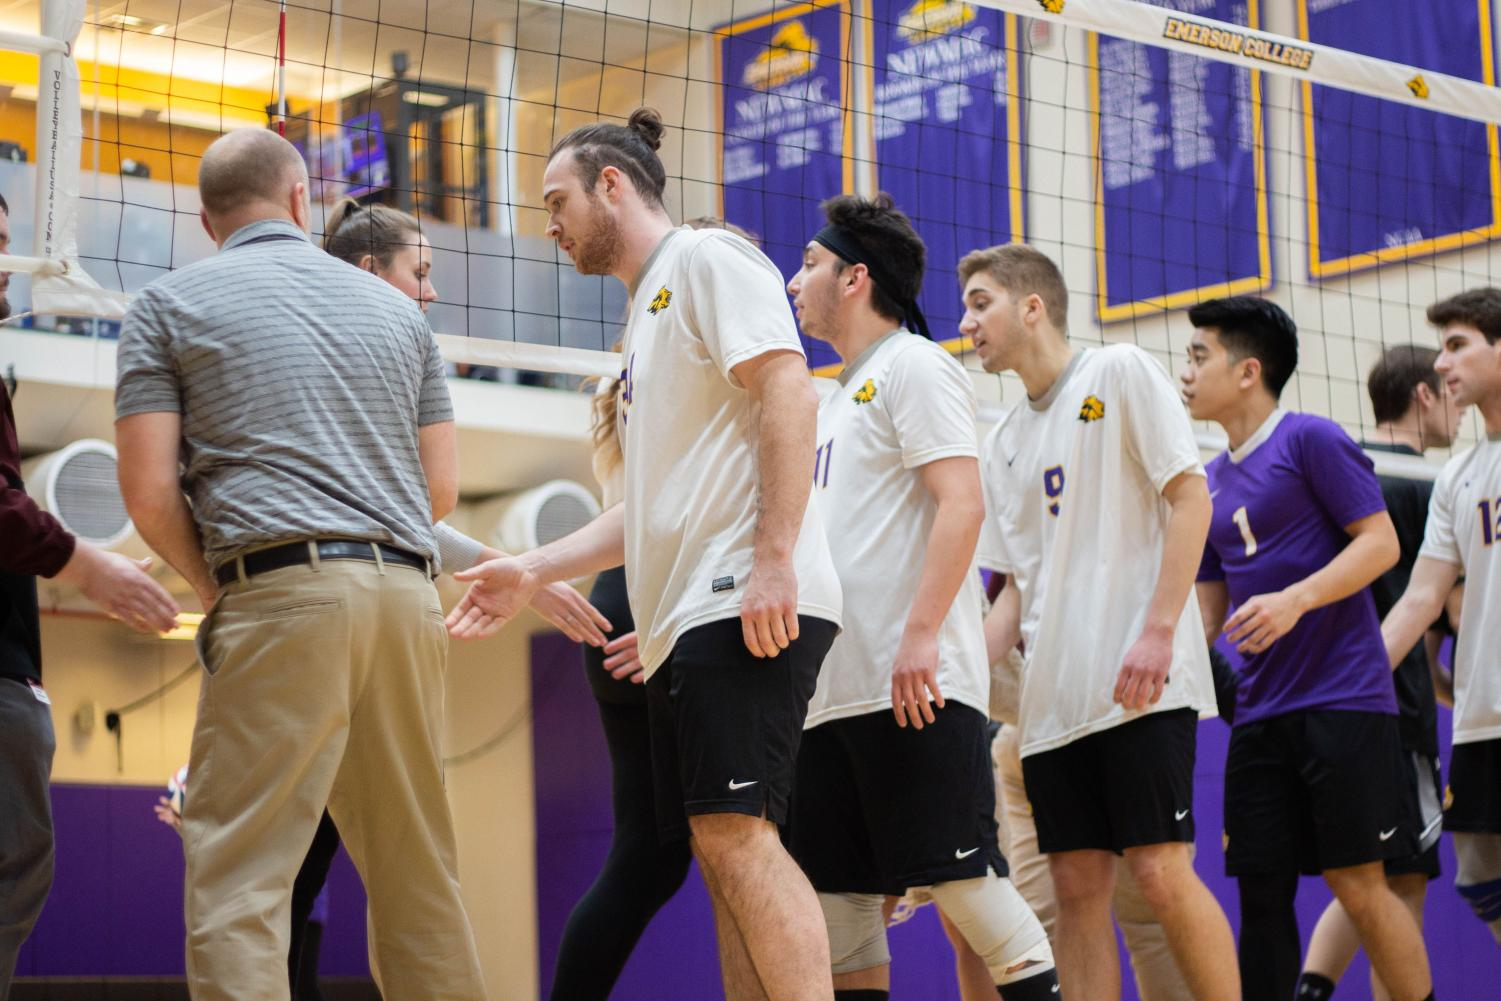 The men's volleyball team won its first game of the season on Thursday Photo credit: Montse Landeros